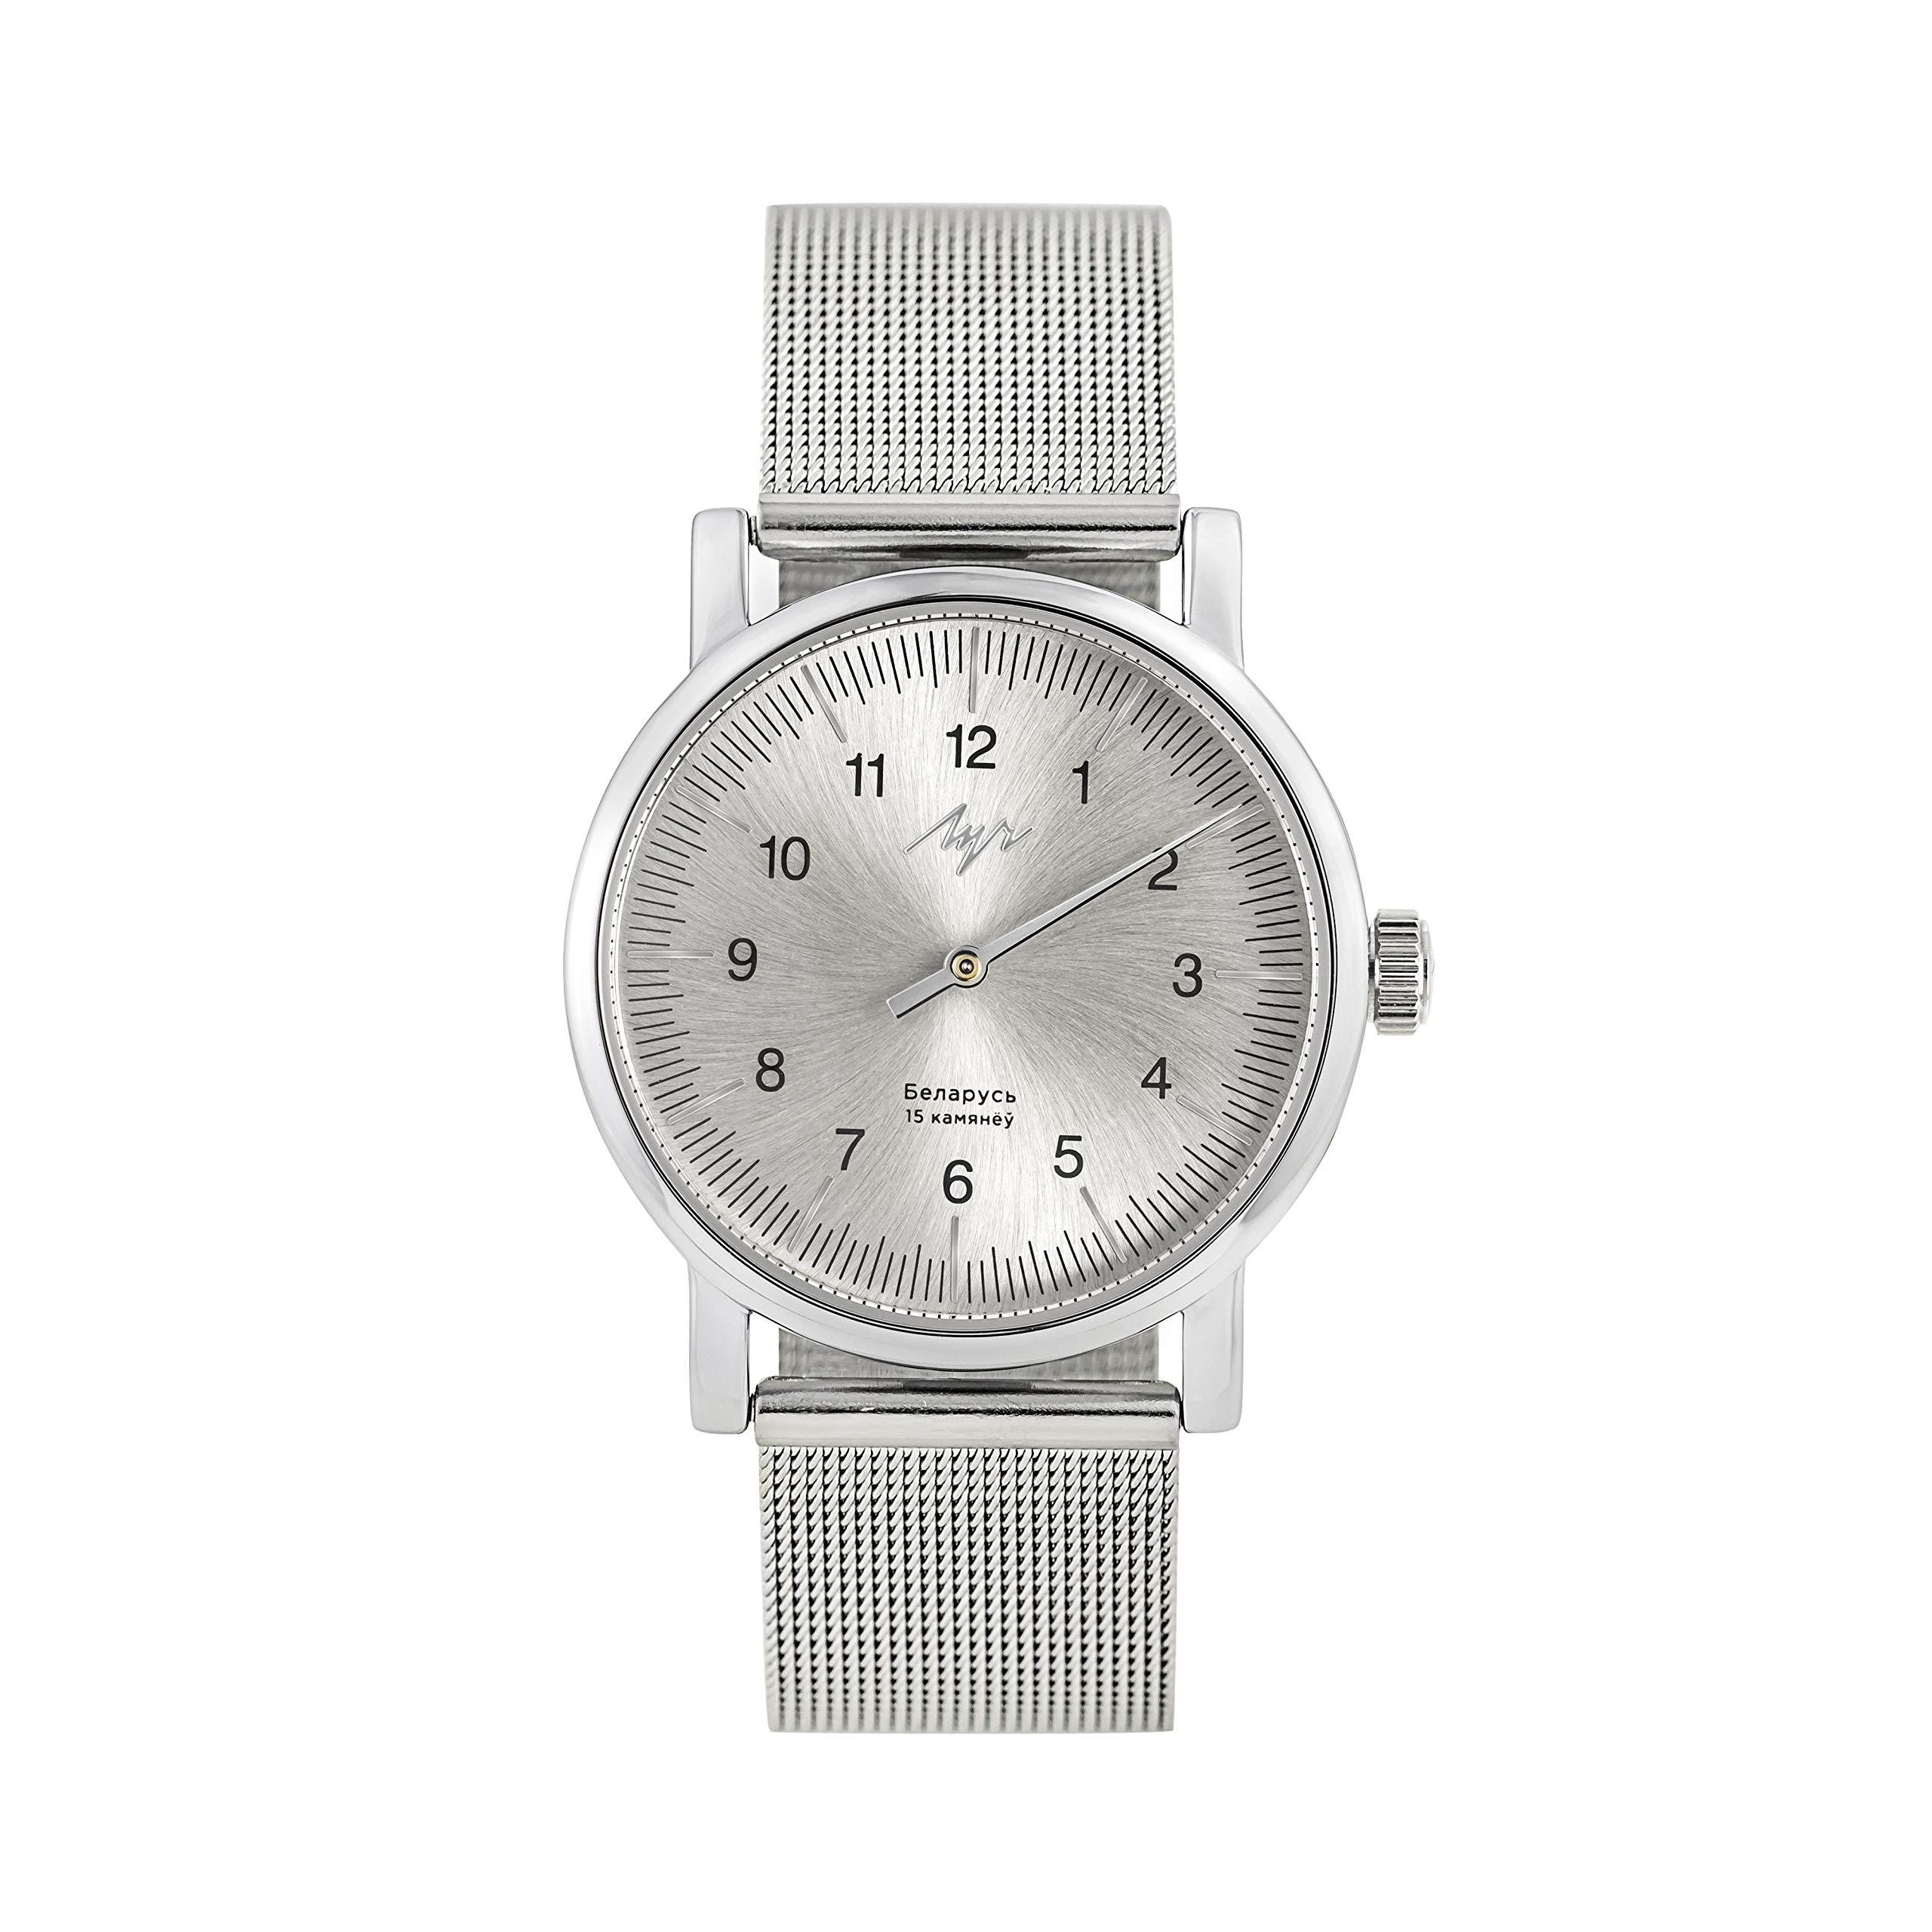 Luch Handwinding One-Handed Watch with Sapphire Crystal - 91950789